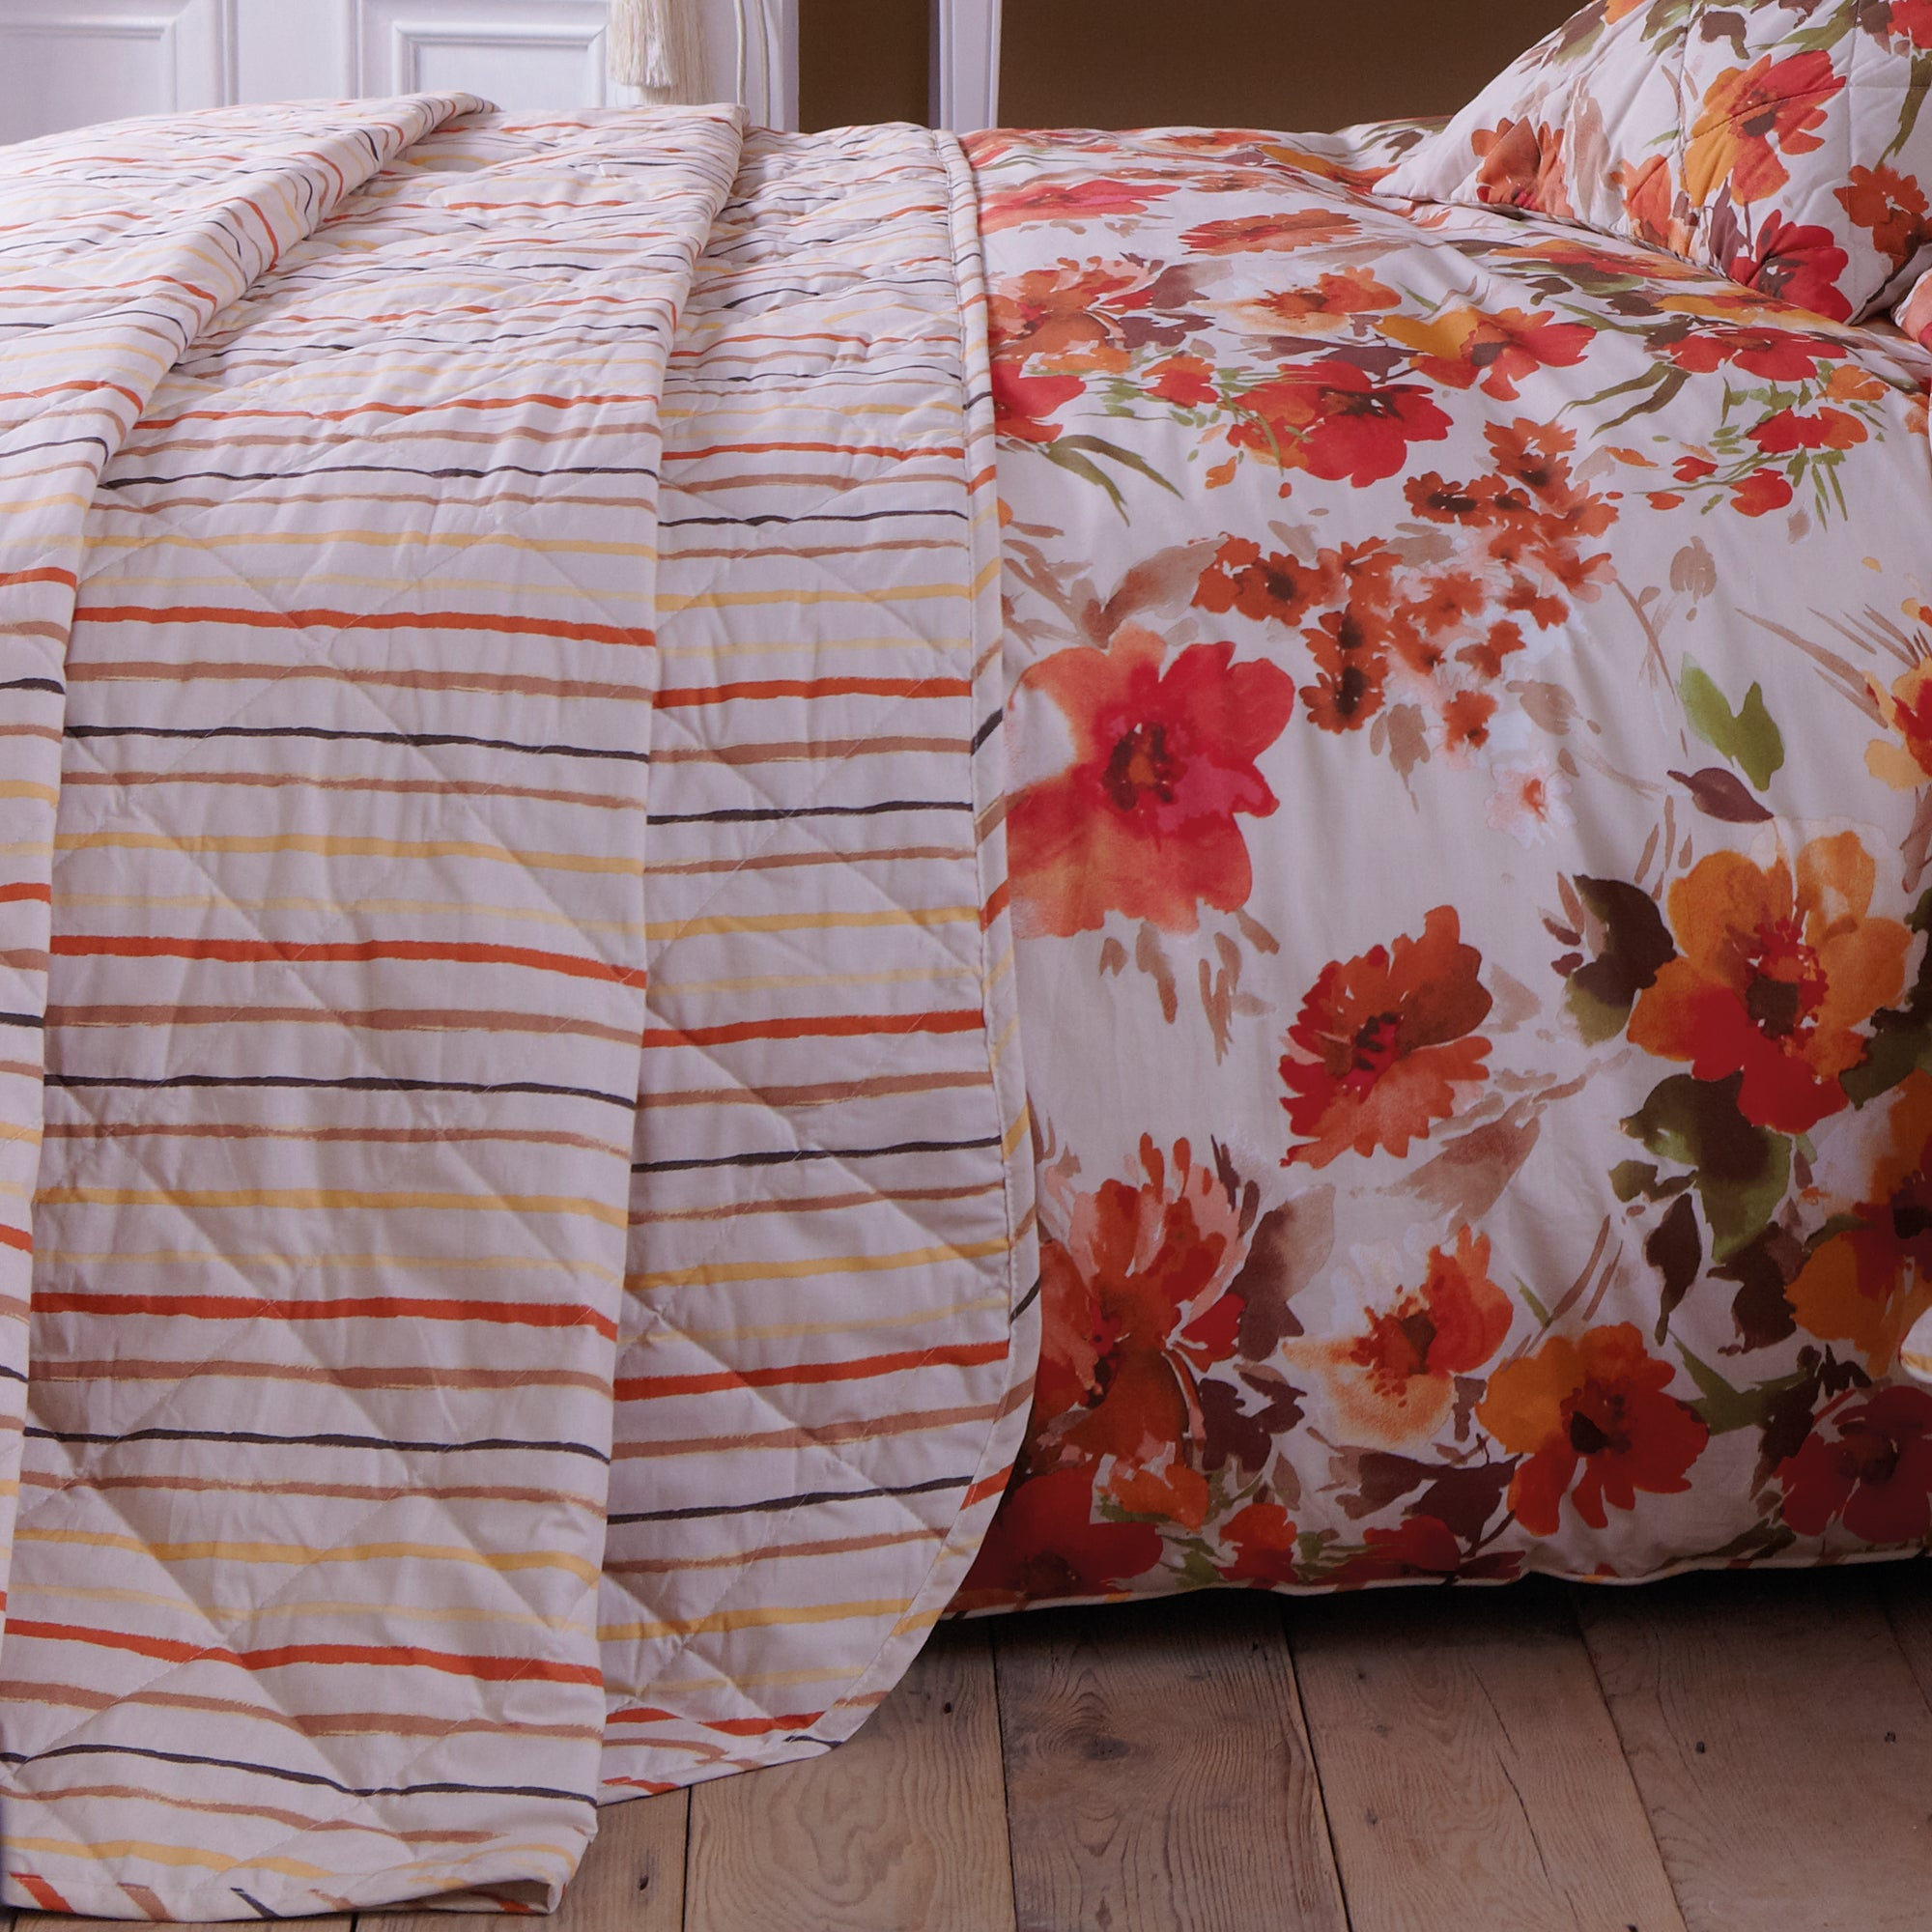 Autumn Floral Collection Bedspread